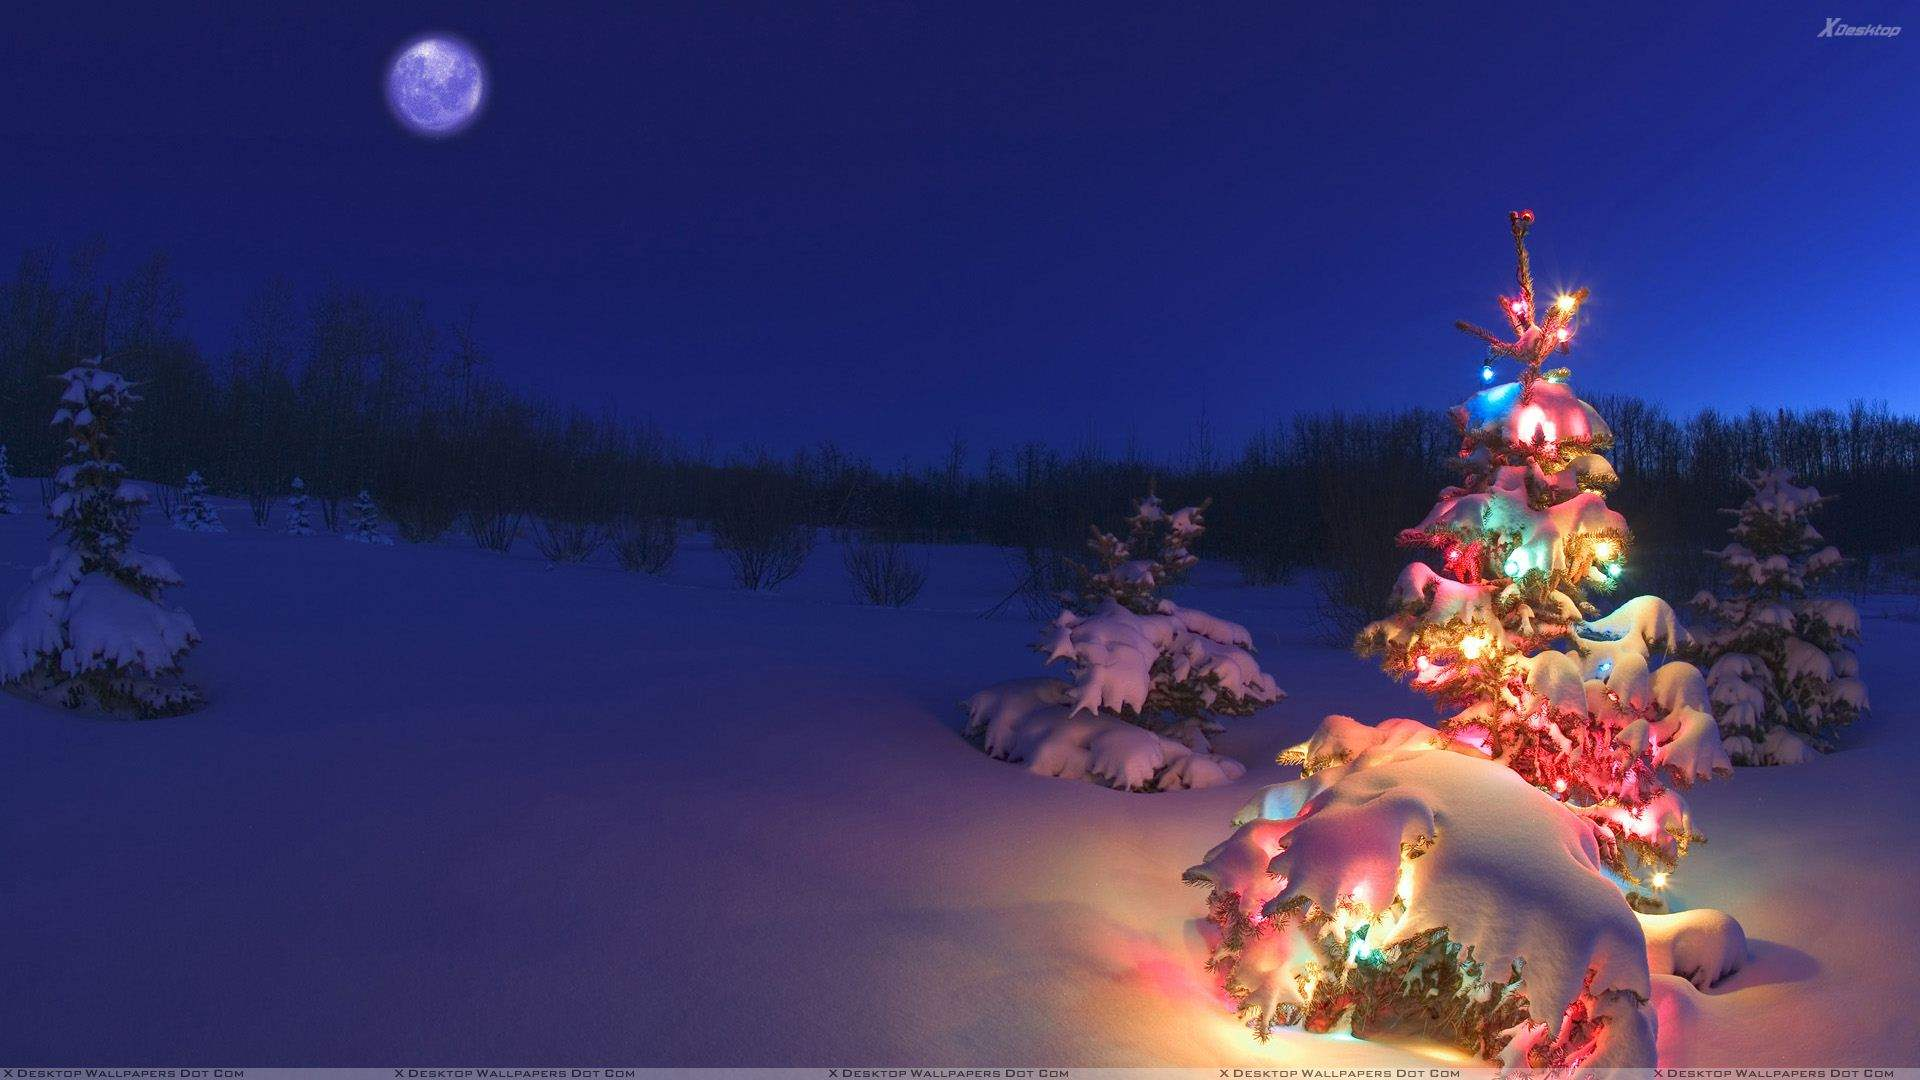 download hd winter and christmas wallpapers photography